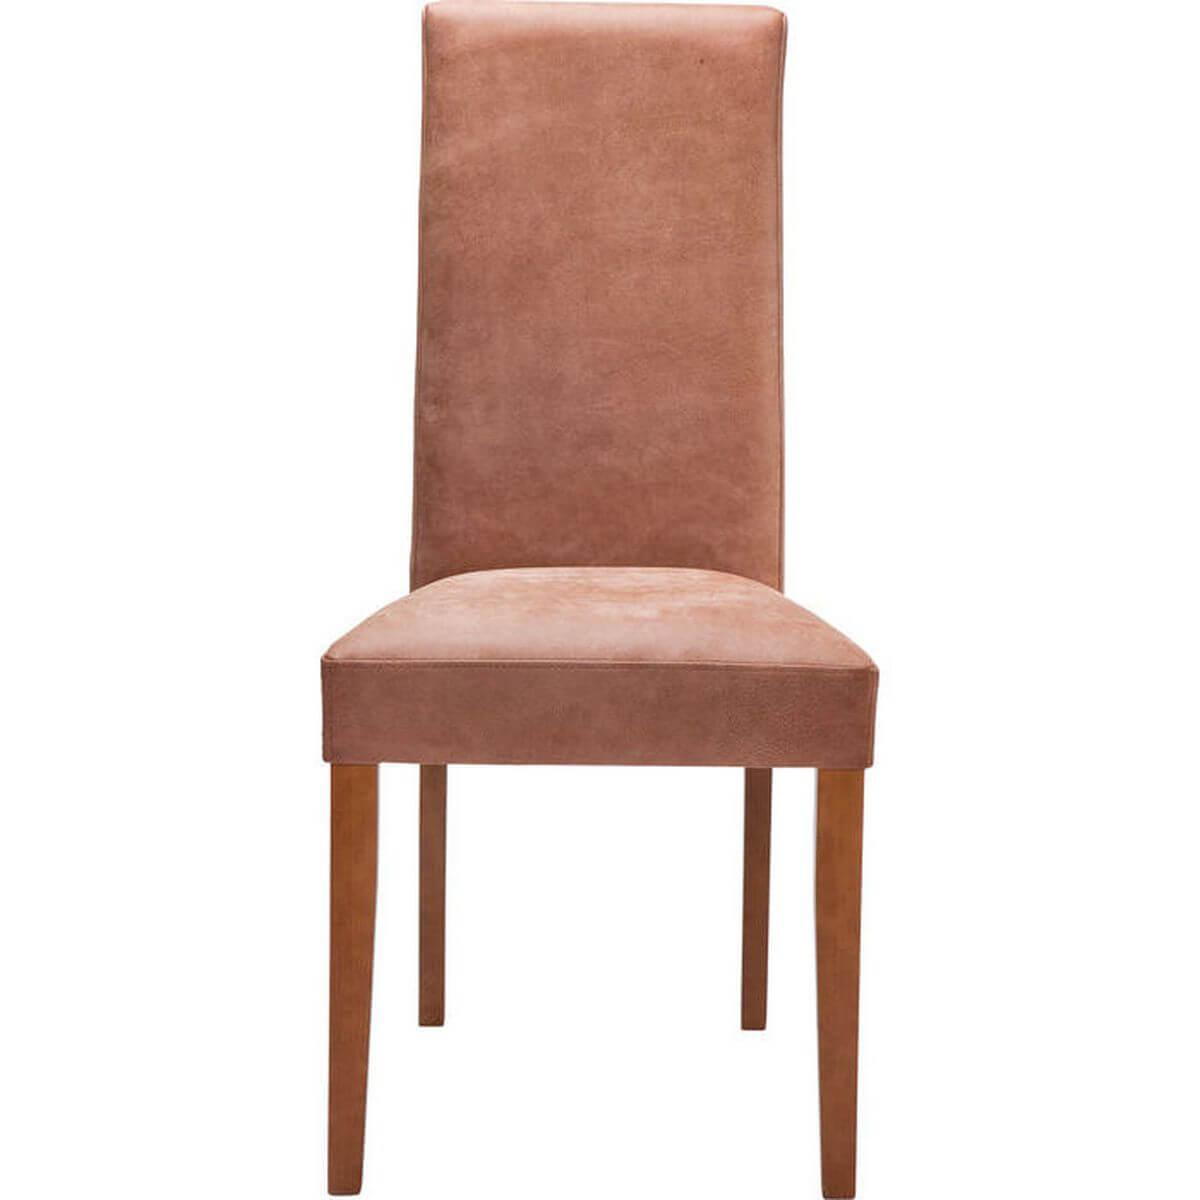 SLIM BUFFALO by Kare Chaise Econo natural